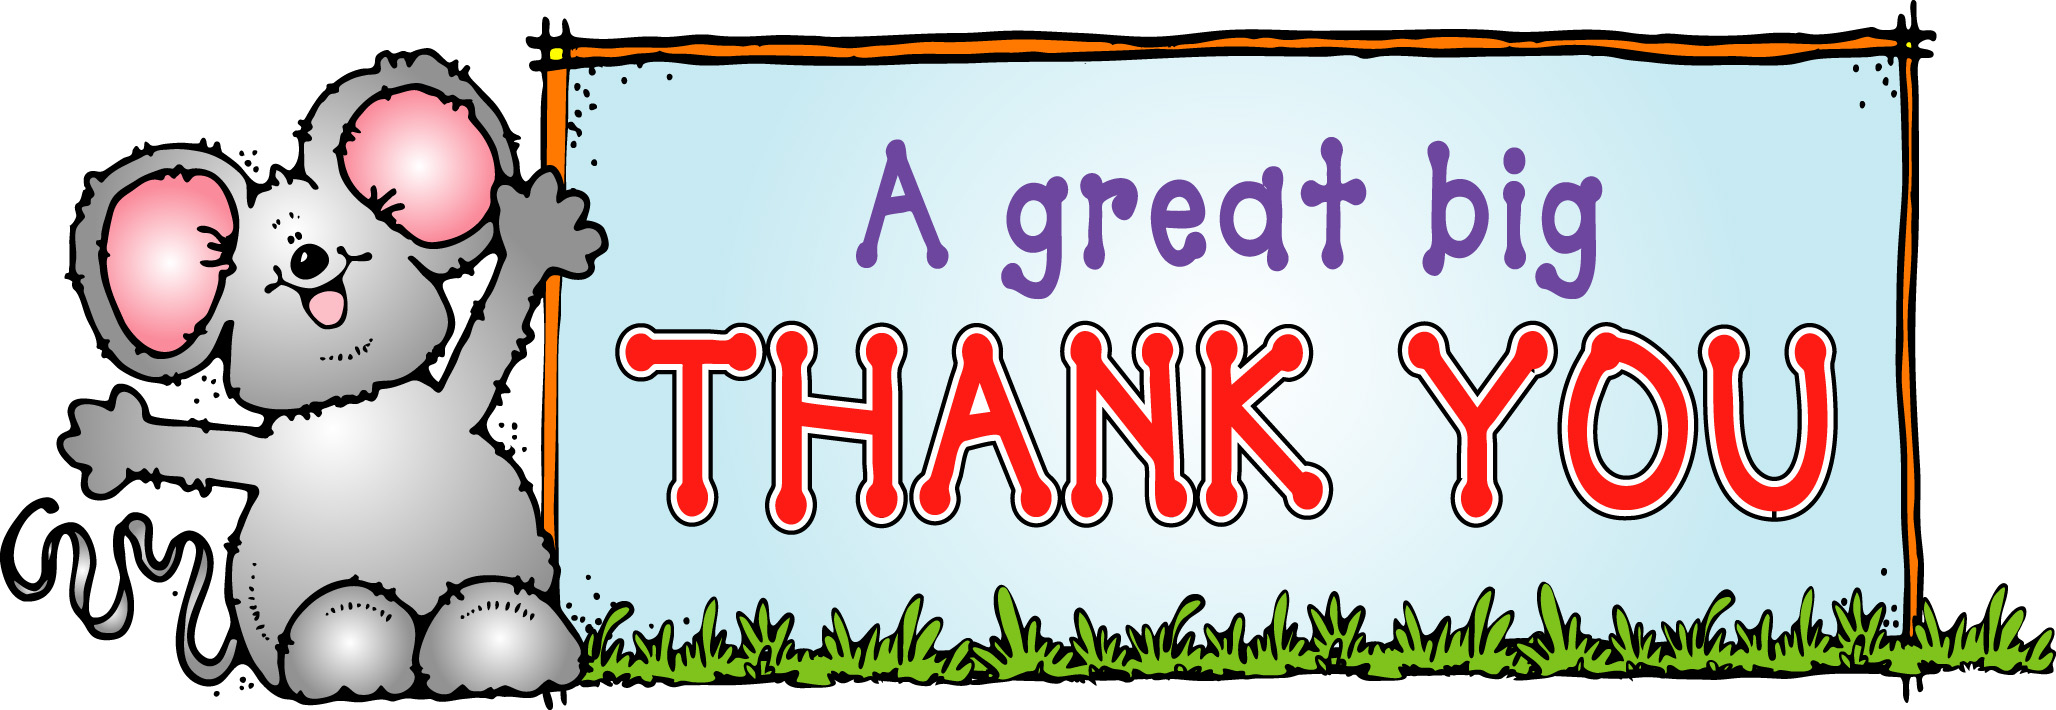 Thank you  free thank you clipart free cliparts for work study and 2